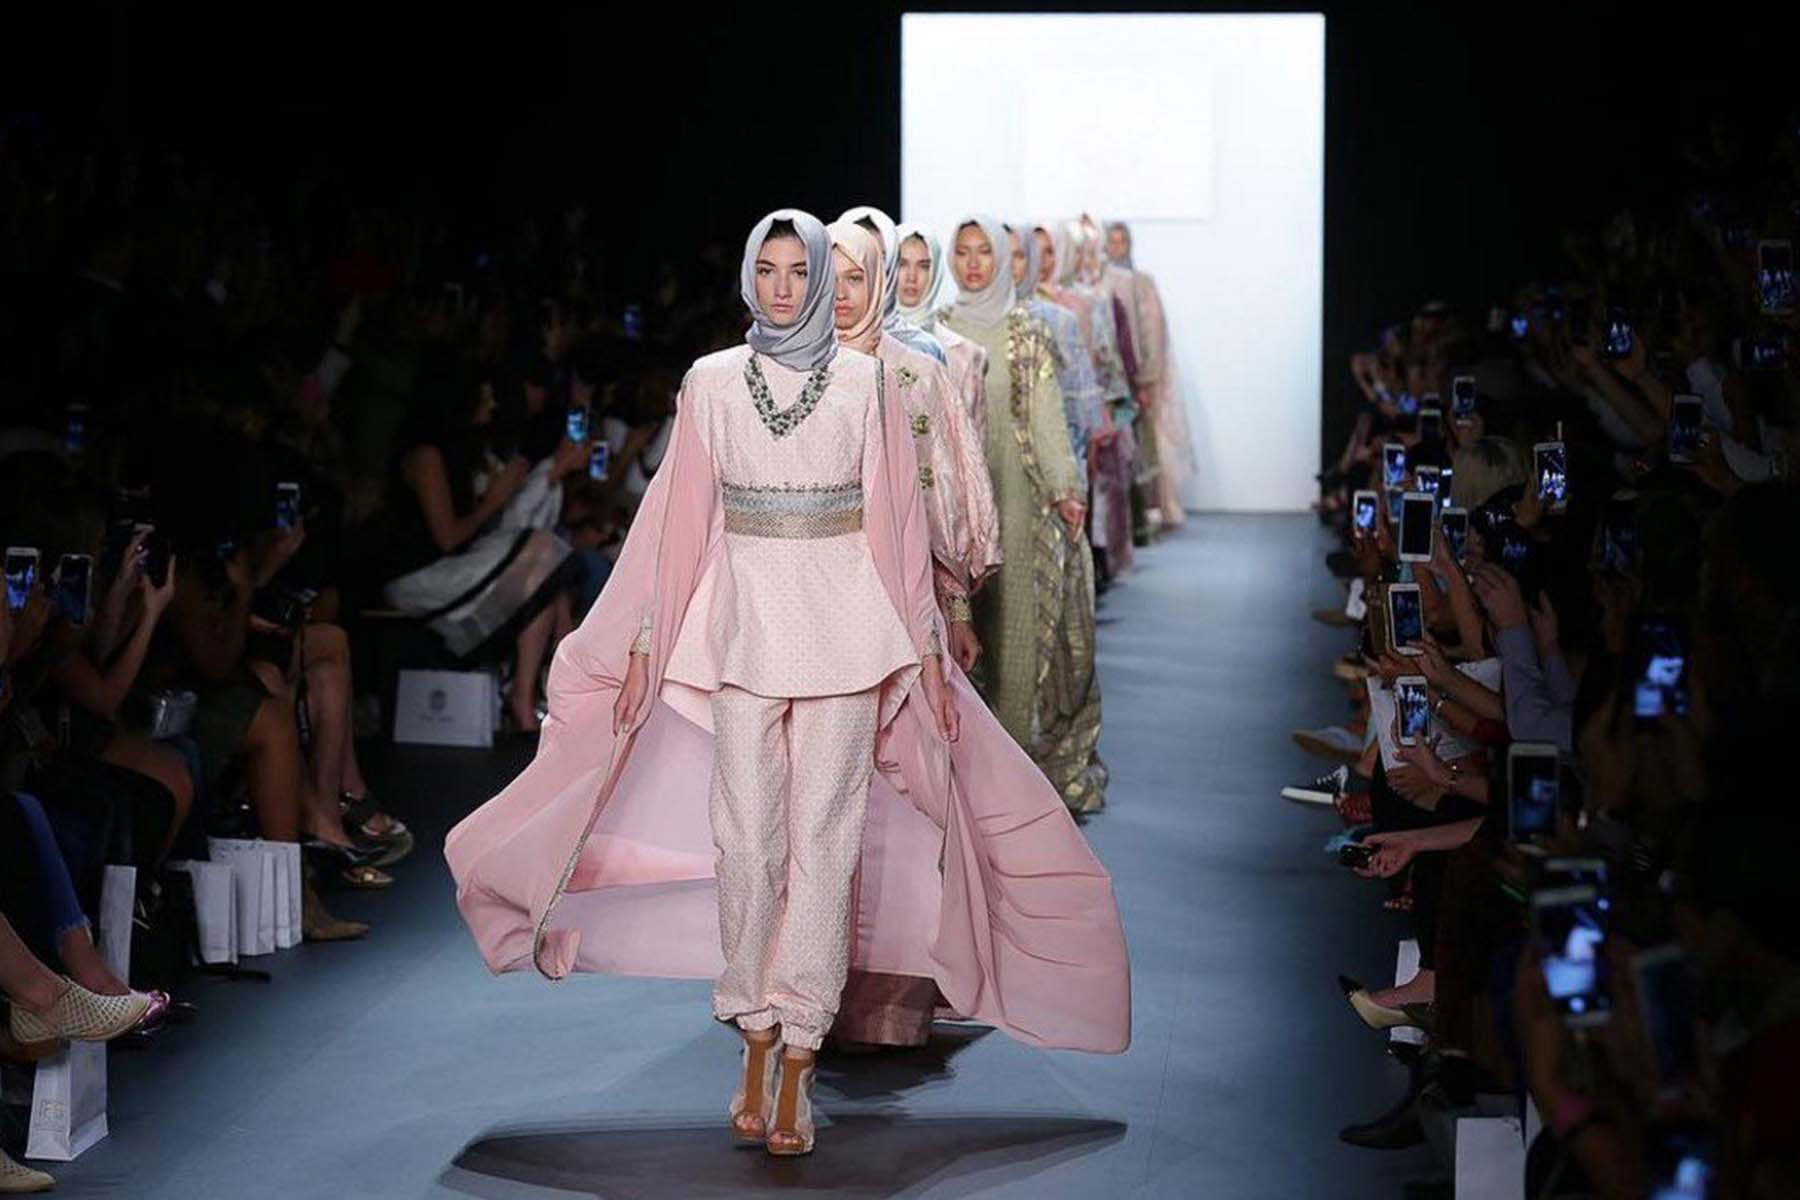 Muslim Fashion Show To Explore The Diversity Of Islamic Style Wisconsin Muslim Journal